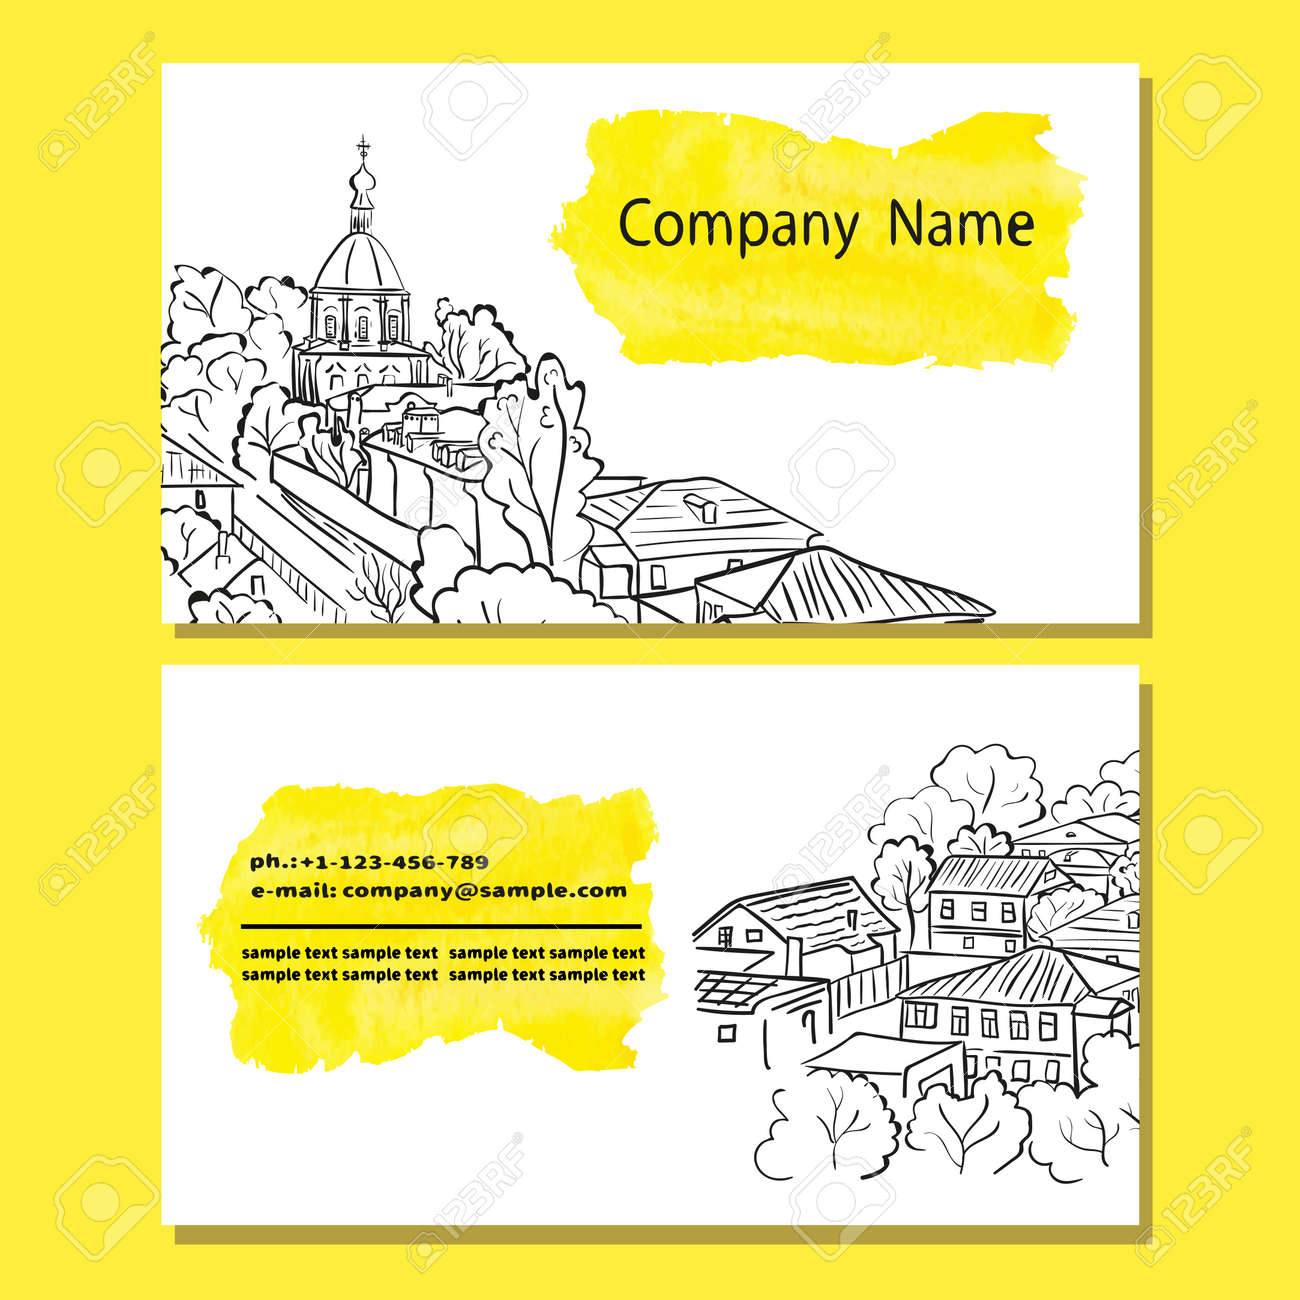 Business Card Design Templates With Sketch Cityscape Vector